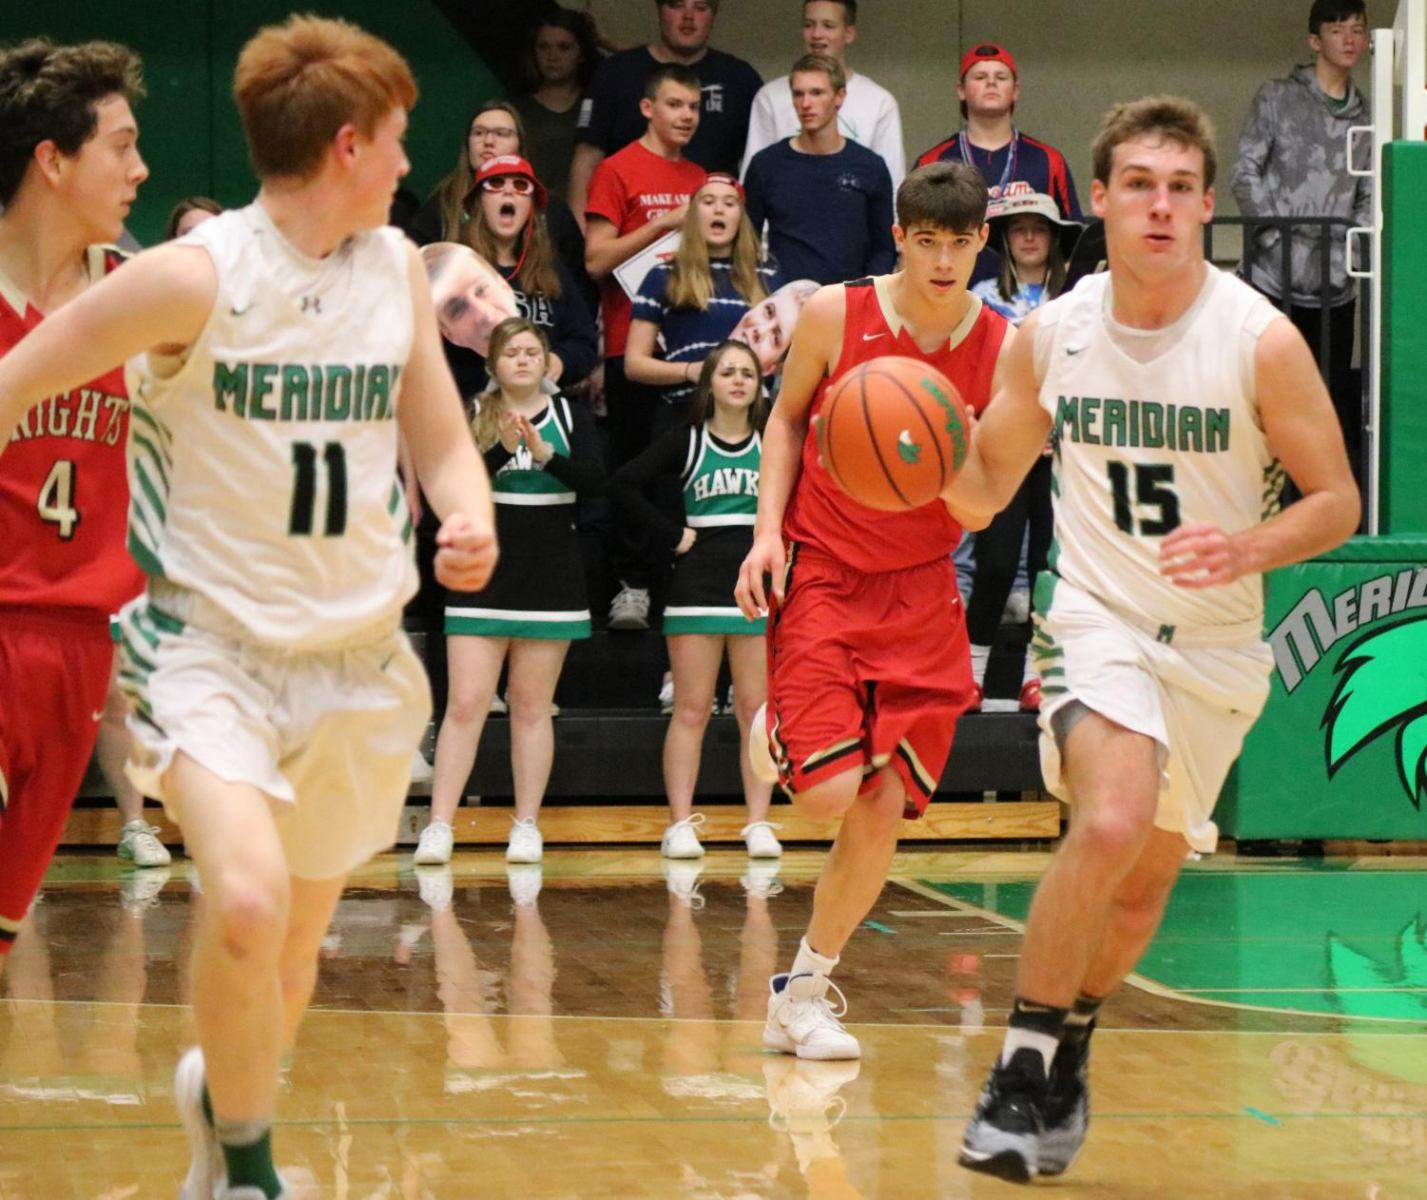 Jacobs Jones dribbles the ball then passes it to number 11 Riley Day.